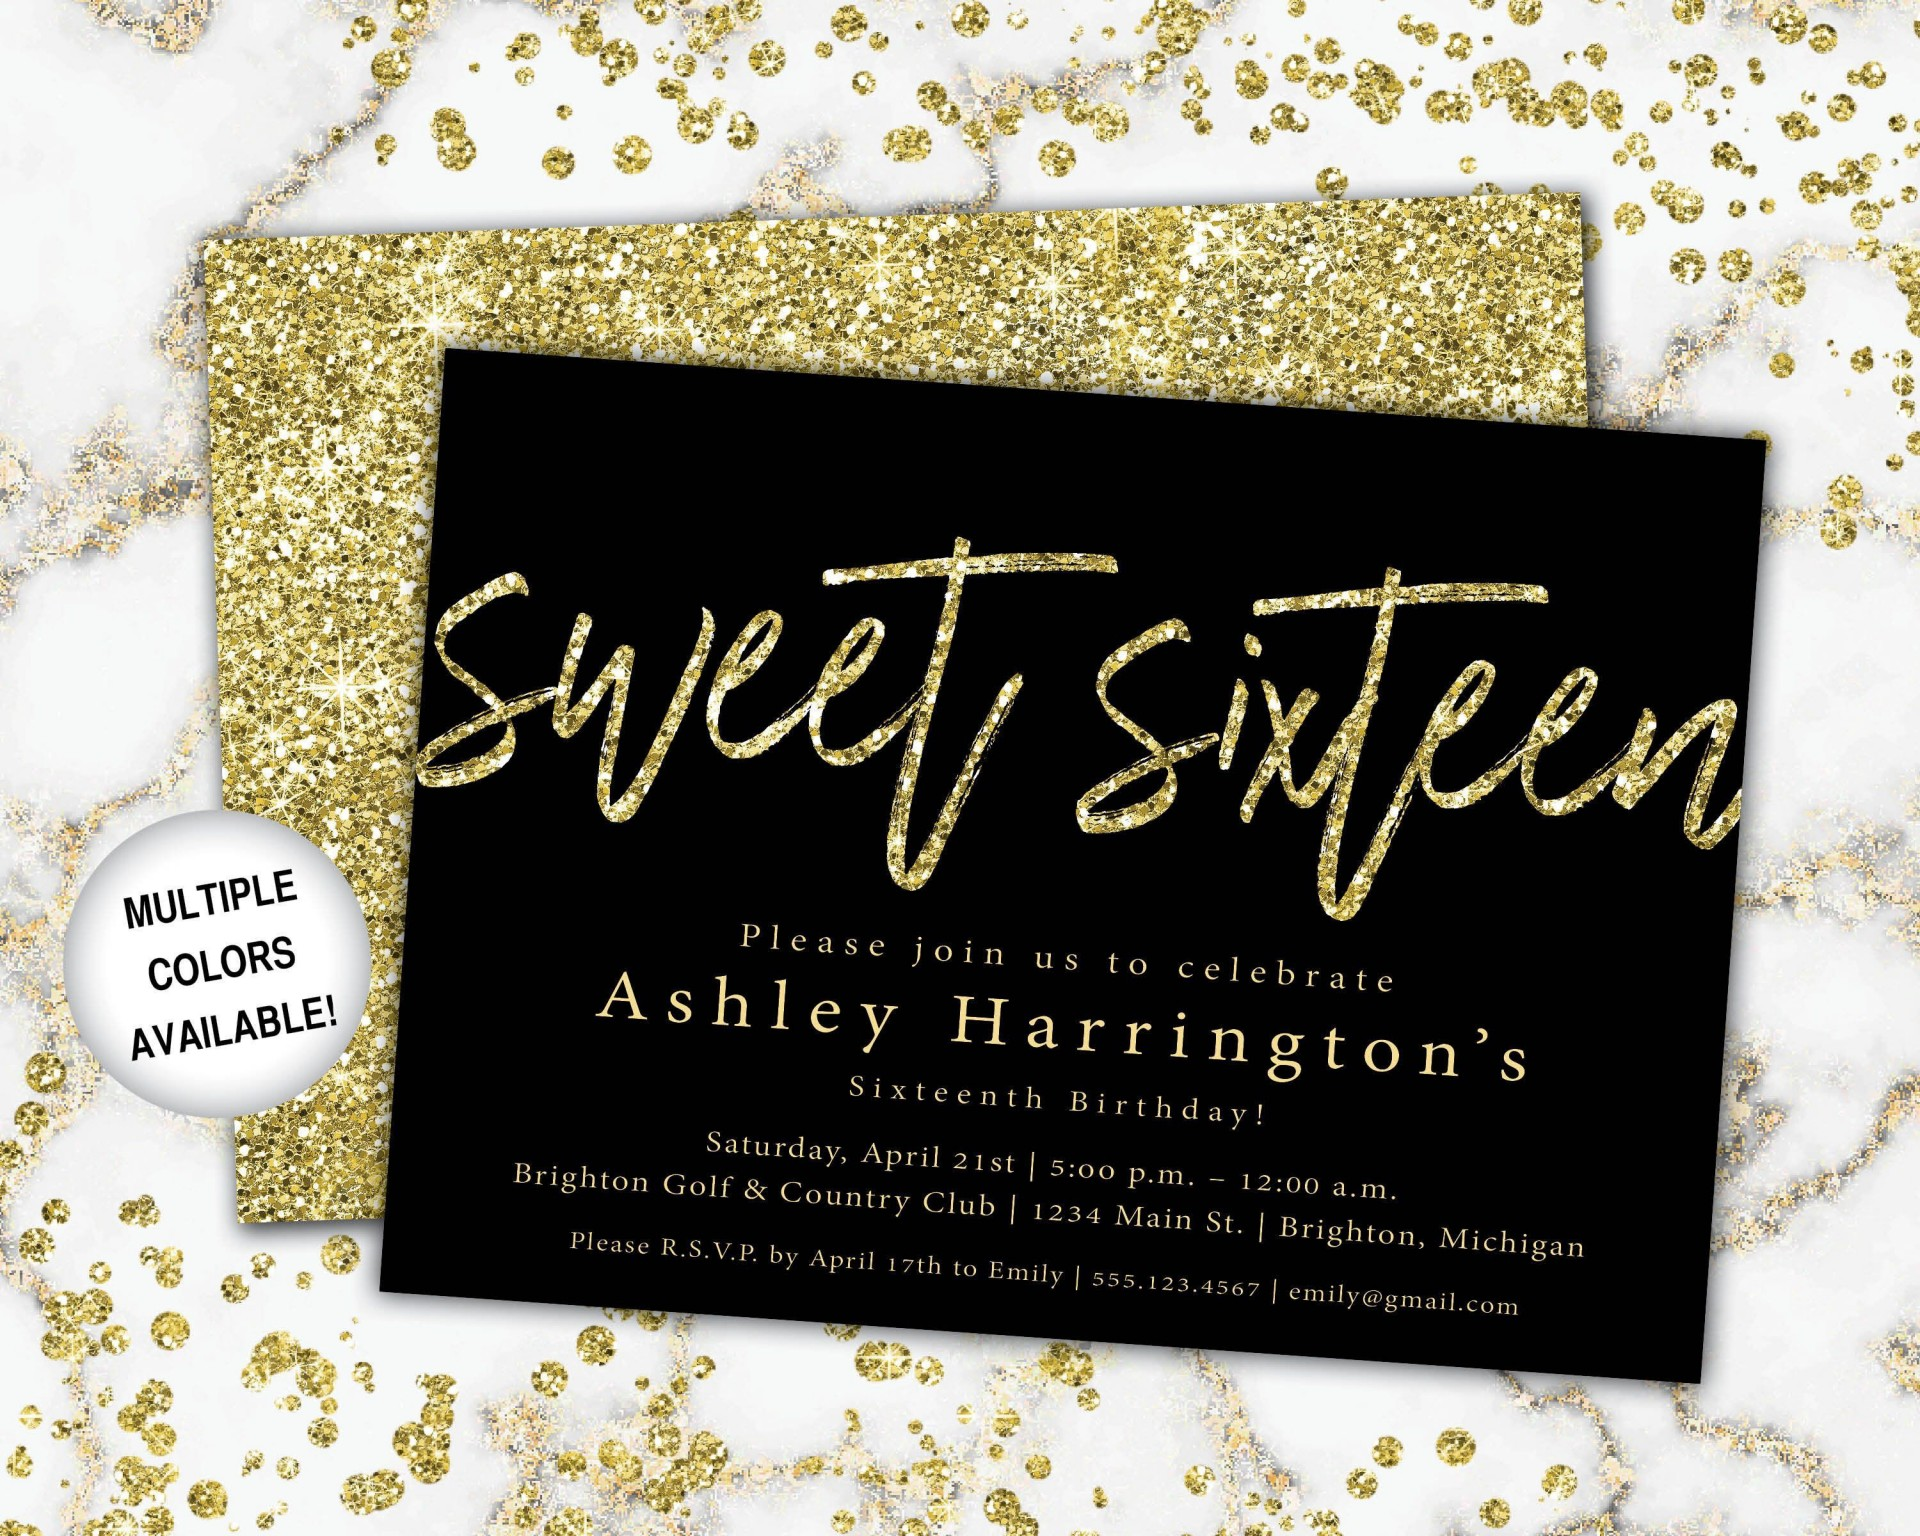 004 Amazing Sweet Sixteen Invitation Template Image  Templates Blue 16 Party Free1920